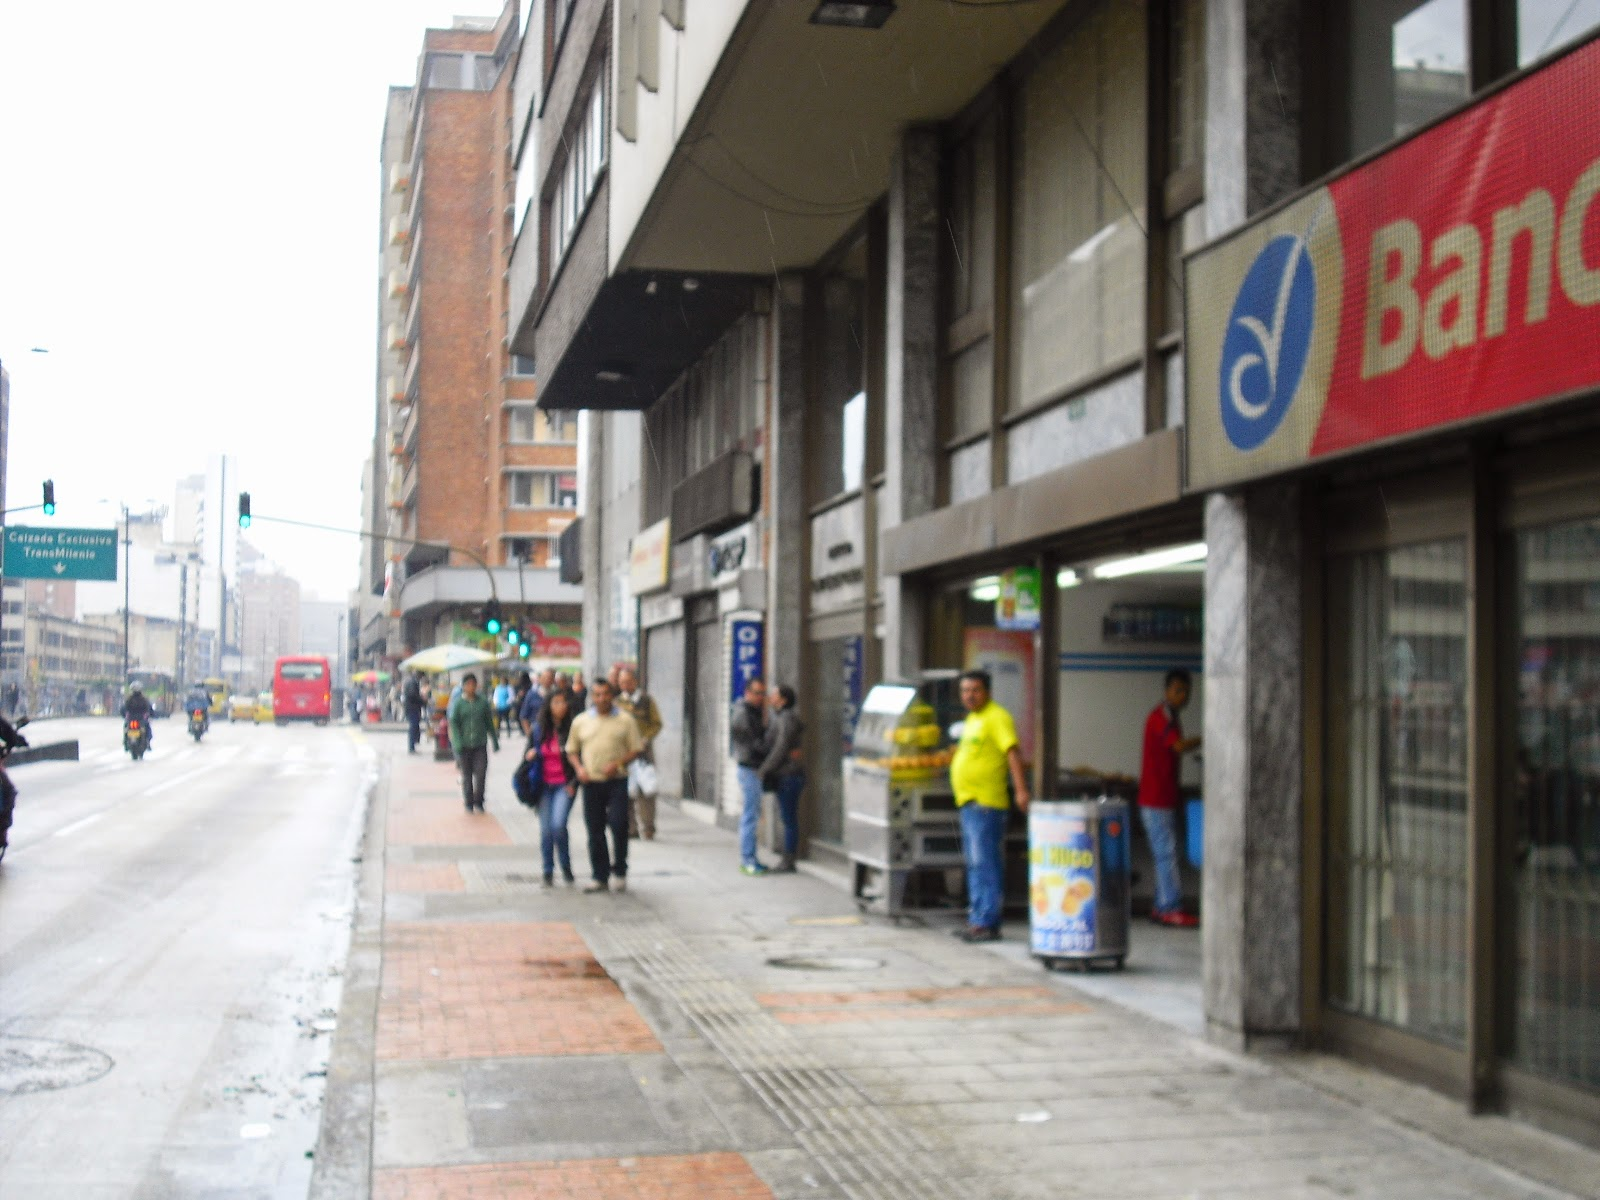 Dodgy tienda bar: You'd do well to avoid this place on Carrera 10 #18-30 in Bogotá.